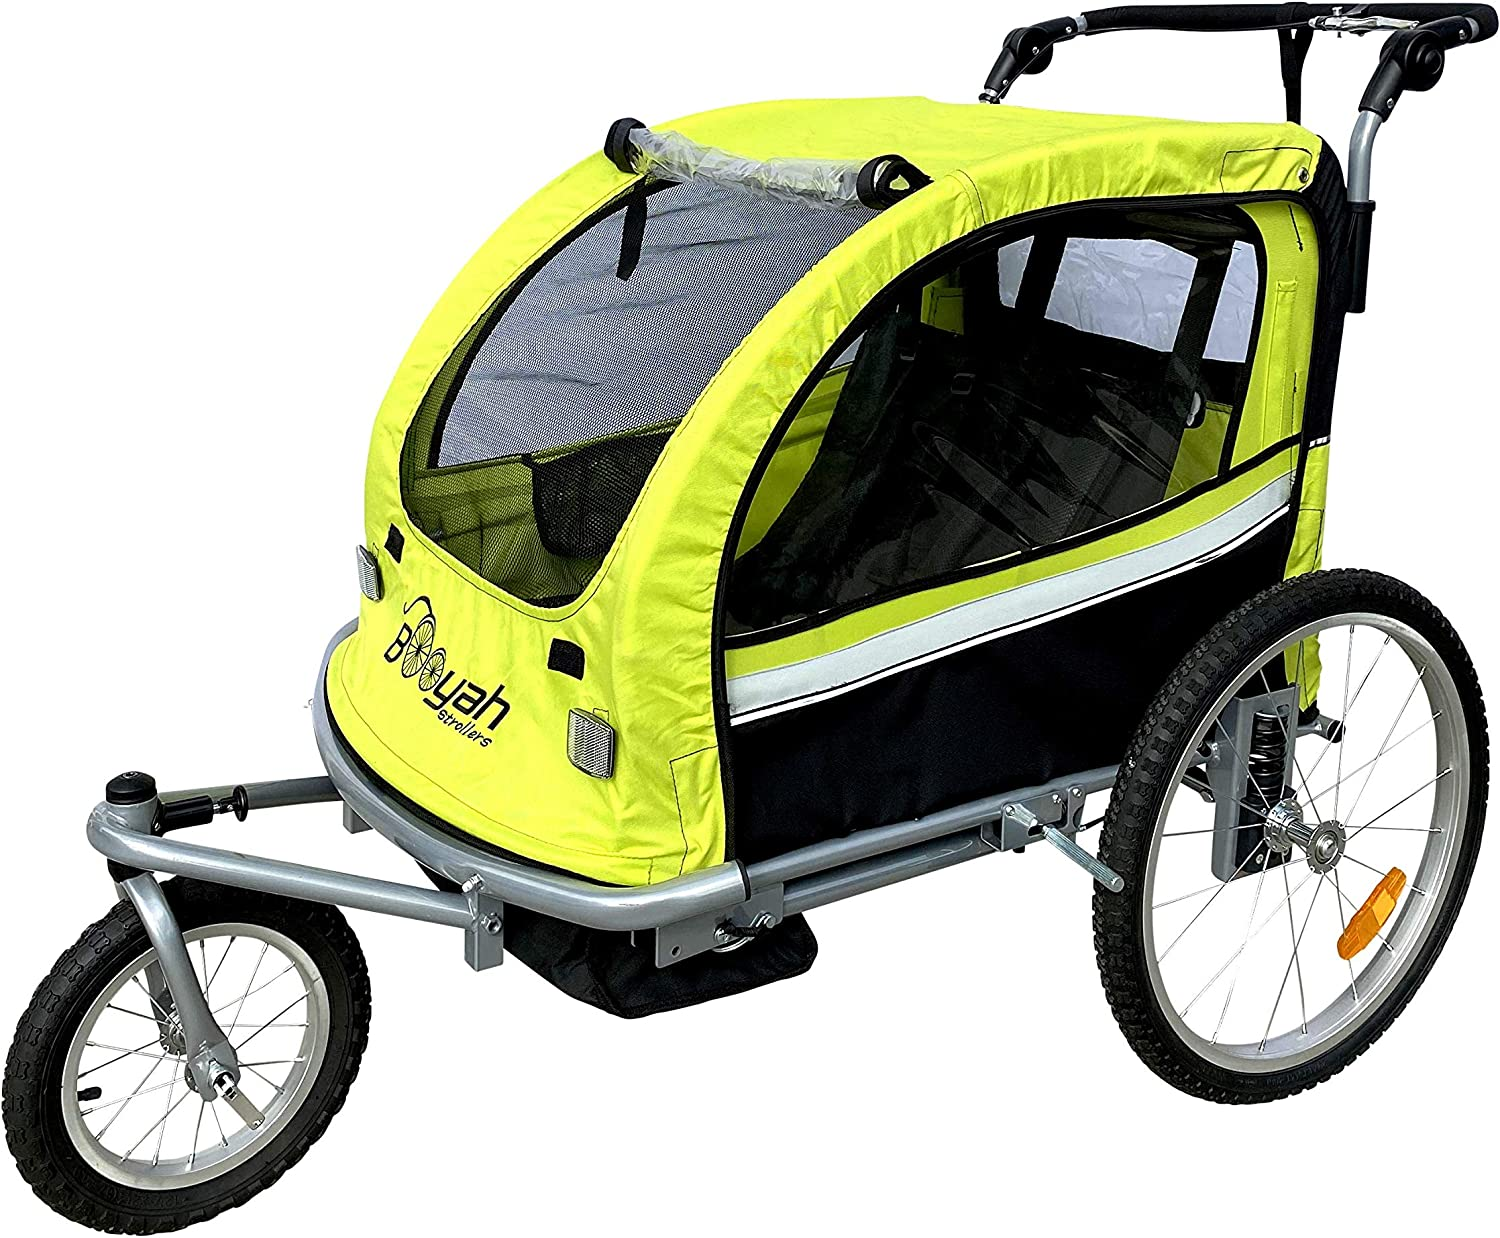 Booyah's 3 in 1 Trailer, Jogger and Stroller